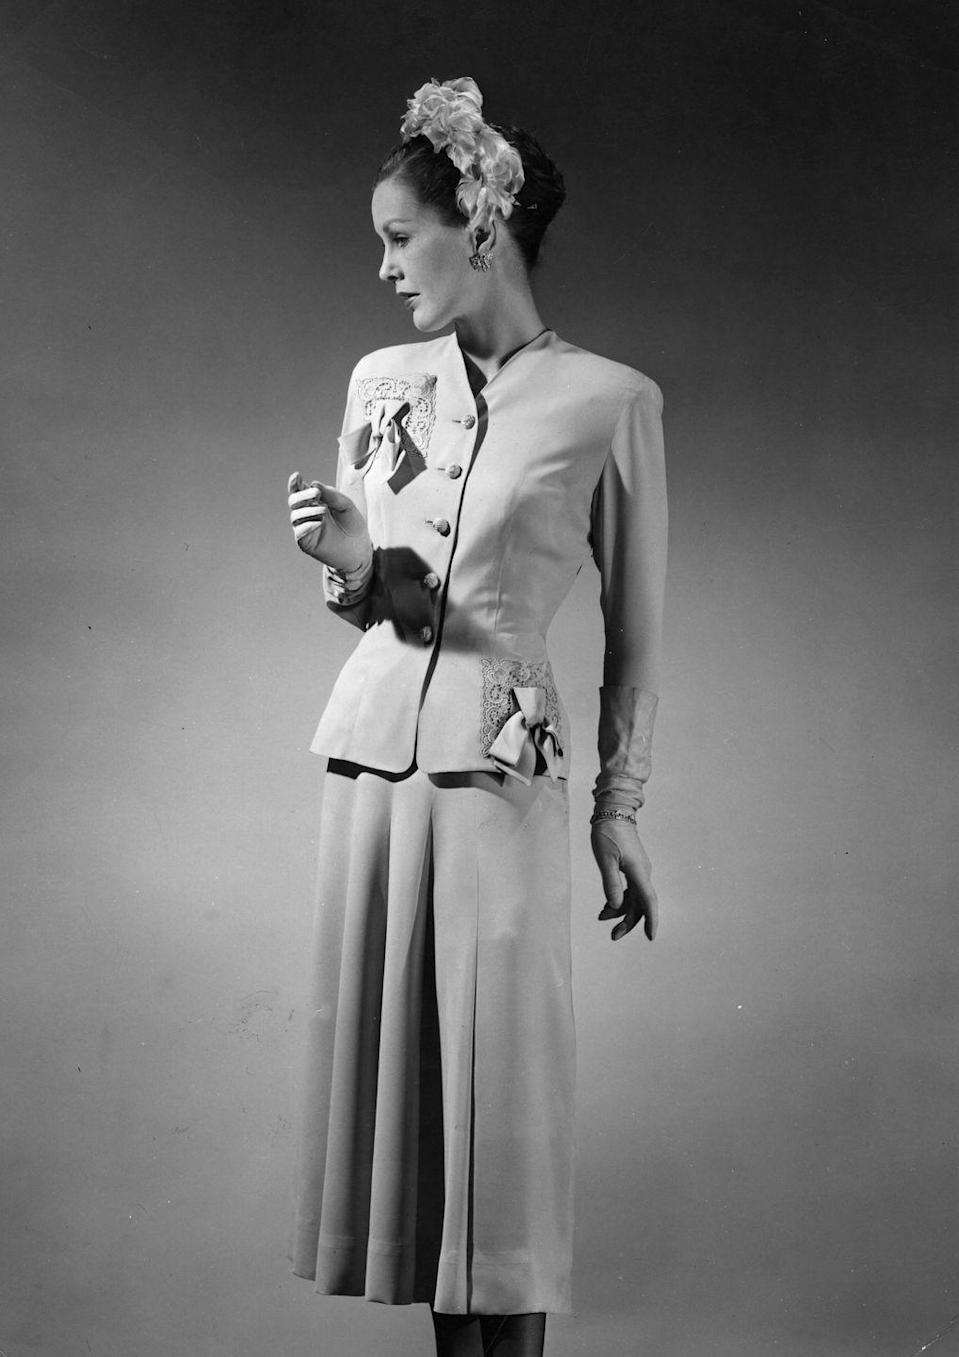 <p>A model shows a fitted two-piece suit, wearing gloves and decorated headband.</p>